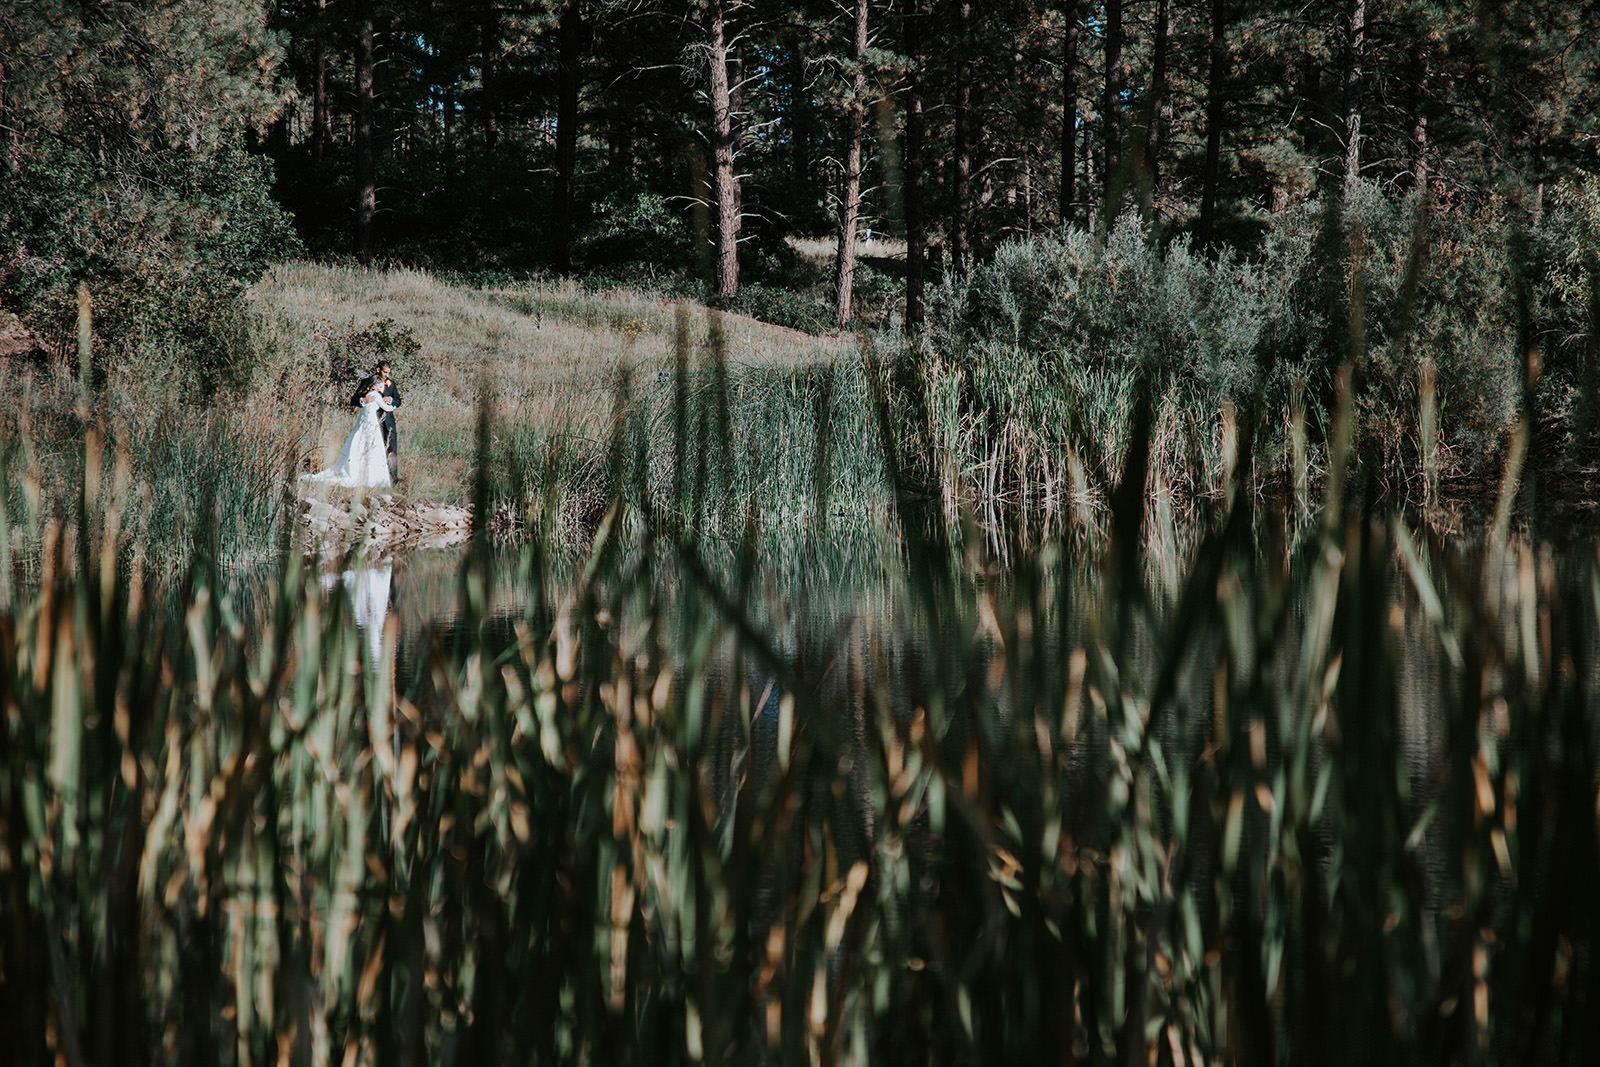 Newlyweds embracing next to pond with tall grasses blurred in foreground